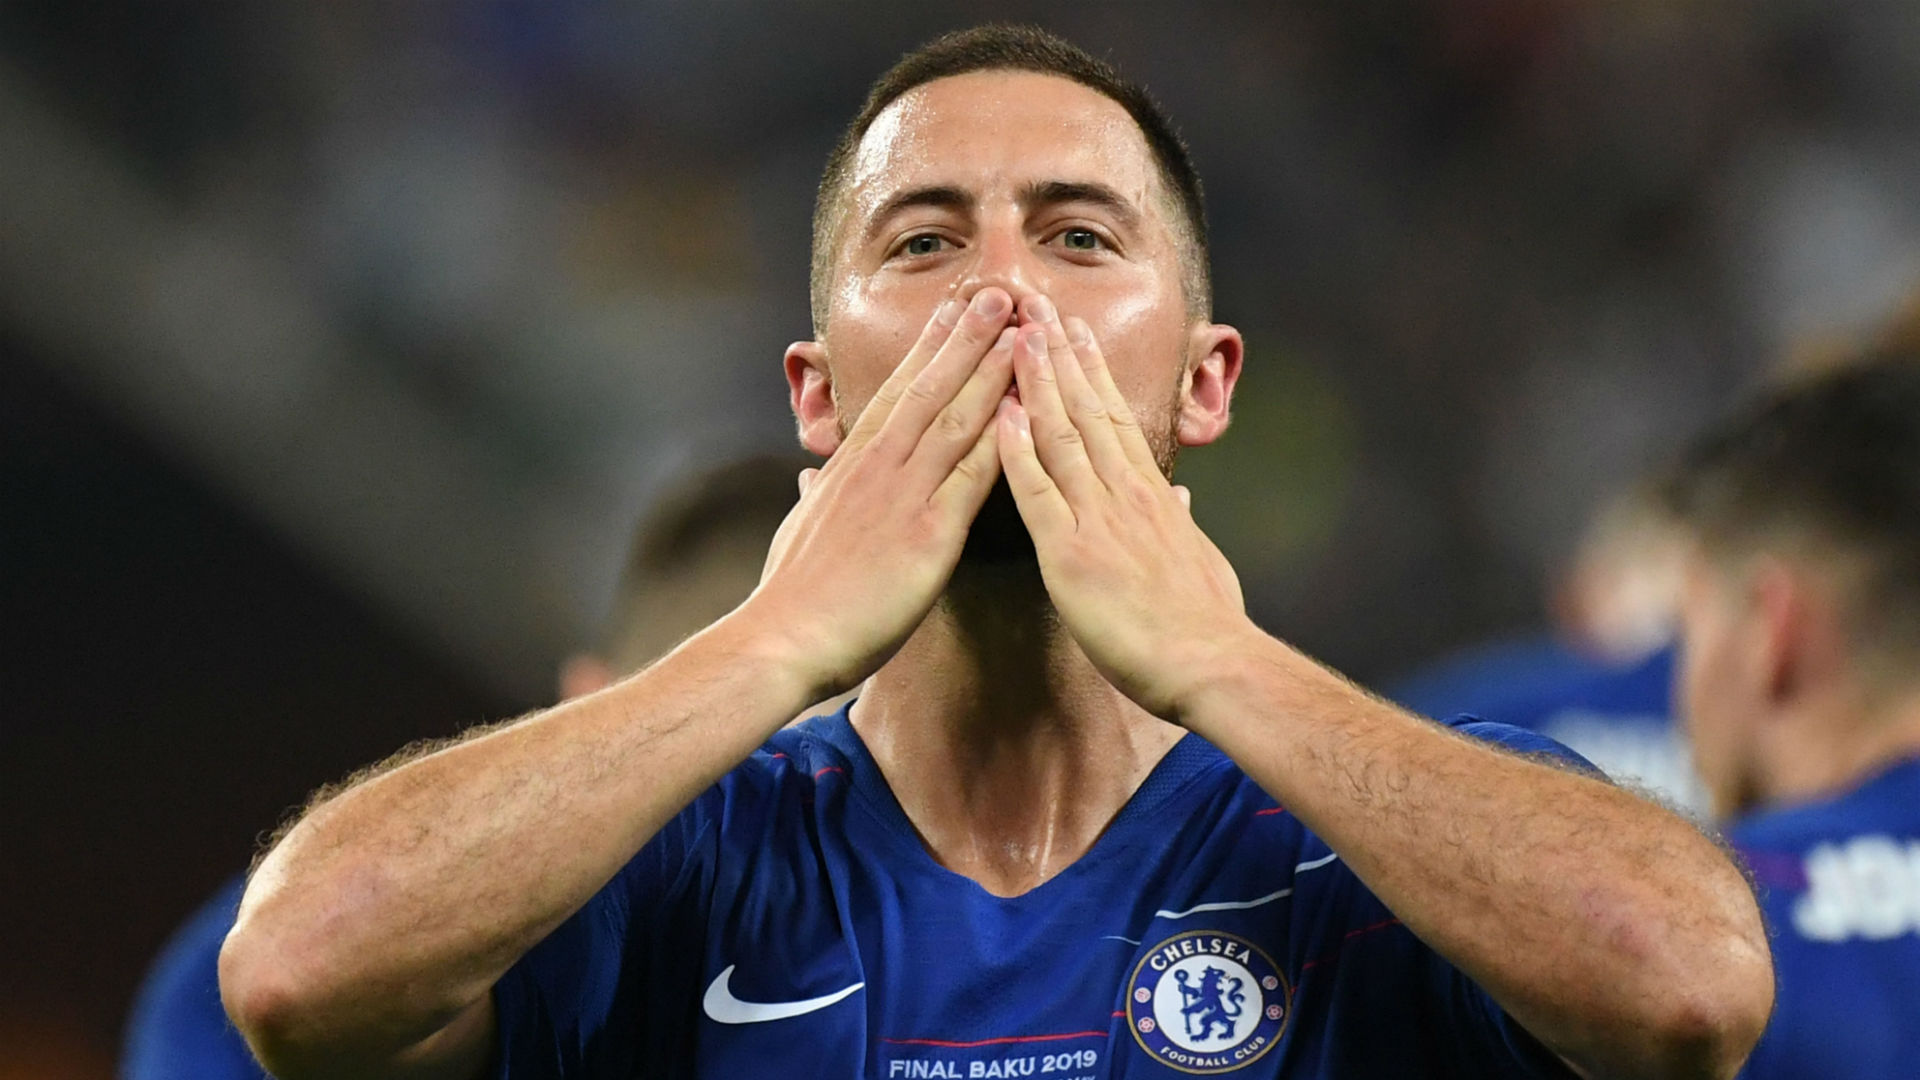 Sassuolo's Boga names ex-Chelsea star Hazard as most talented he's played with